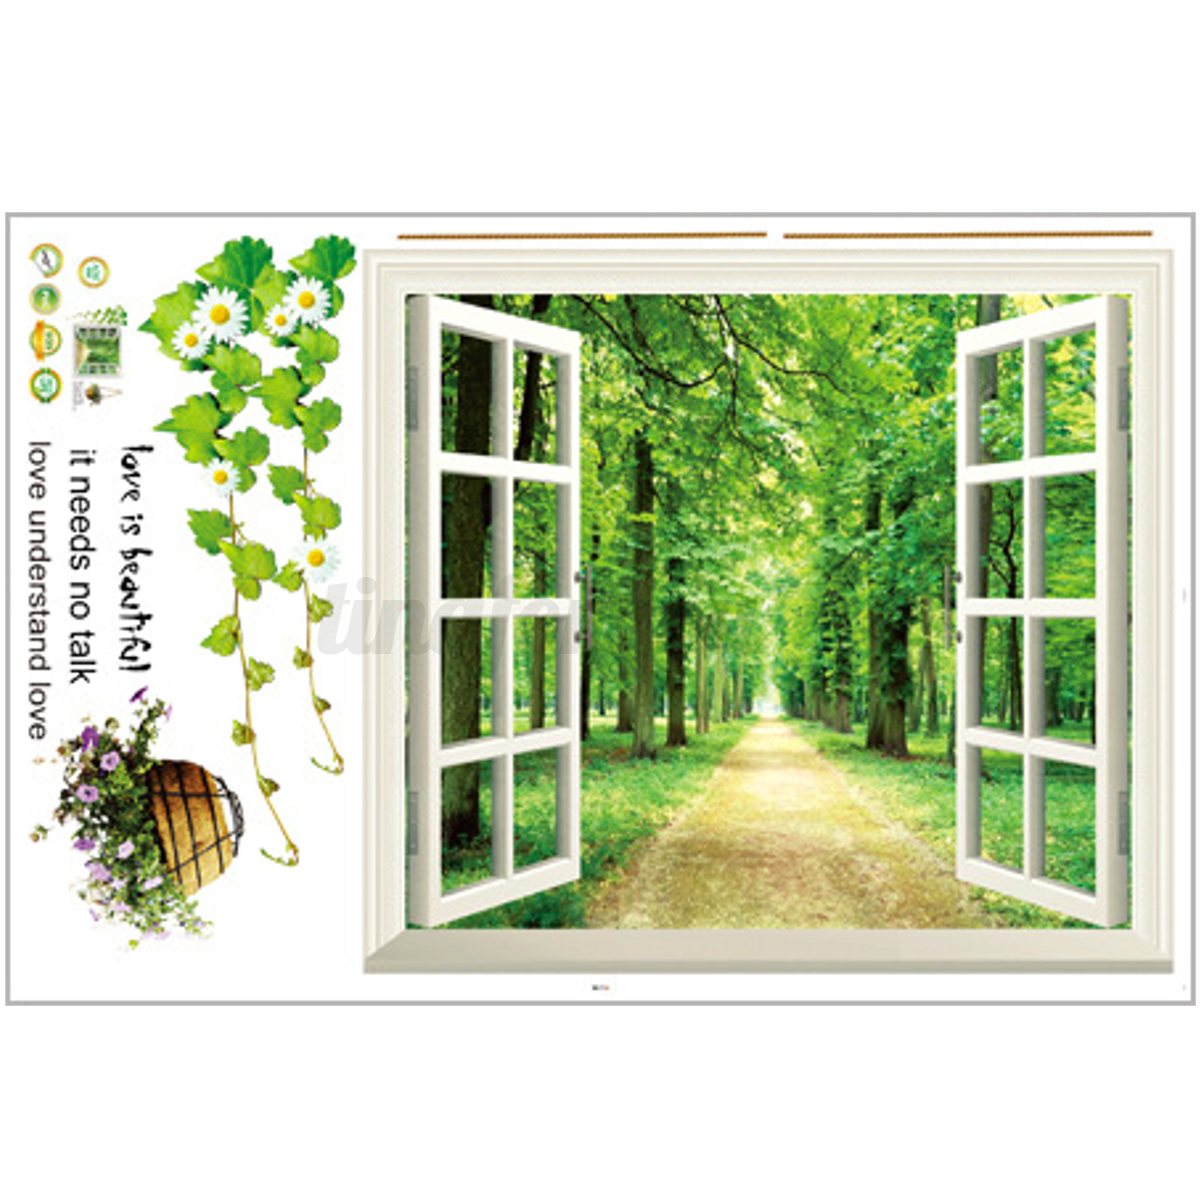 Beach window view scenery 3d wall stickers vinyl art mural for Decal wall art mural